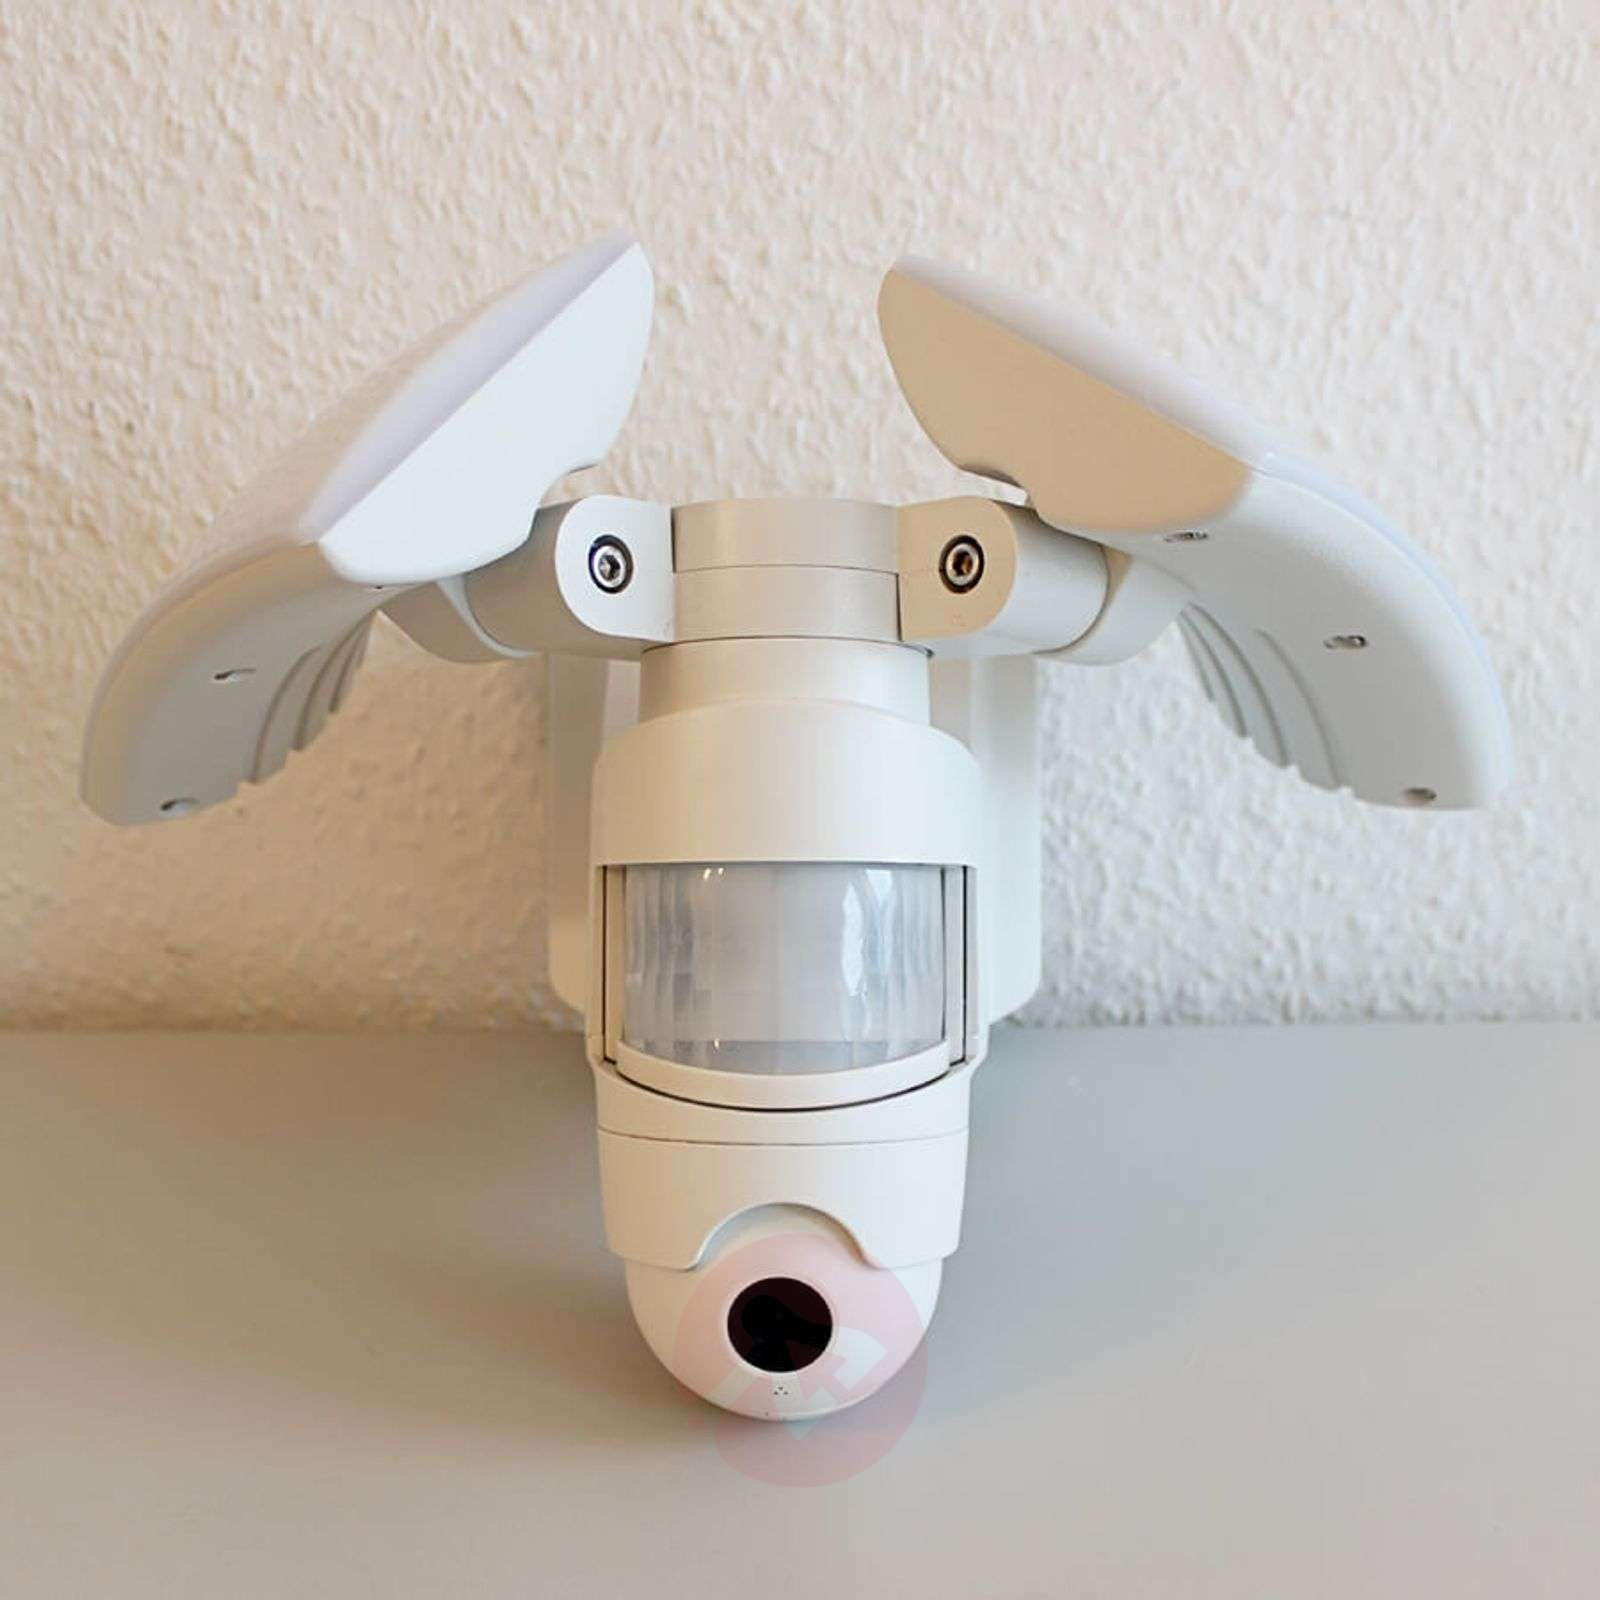 LED outdoor wall lamp Libra Cam with camera-3006509-01